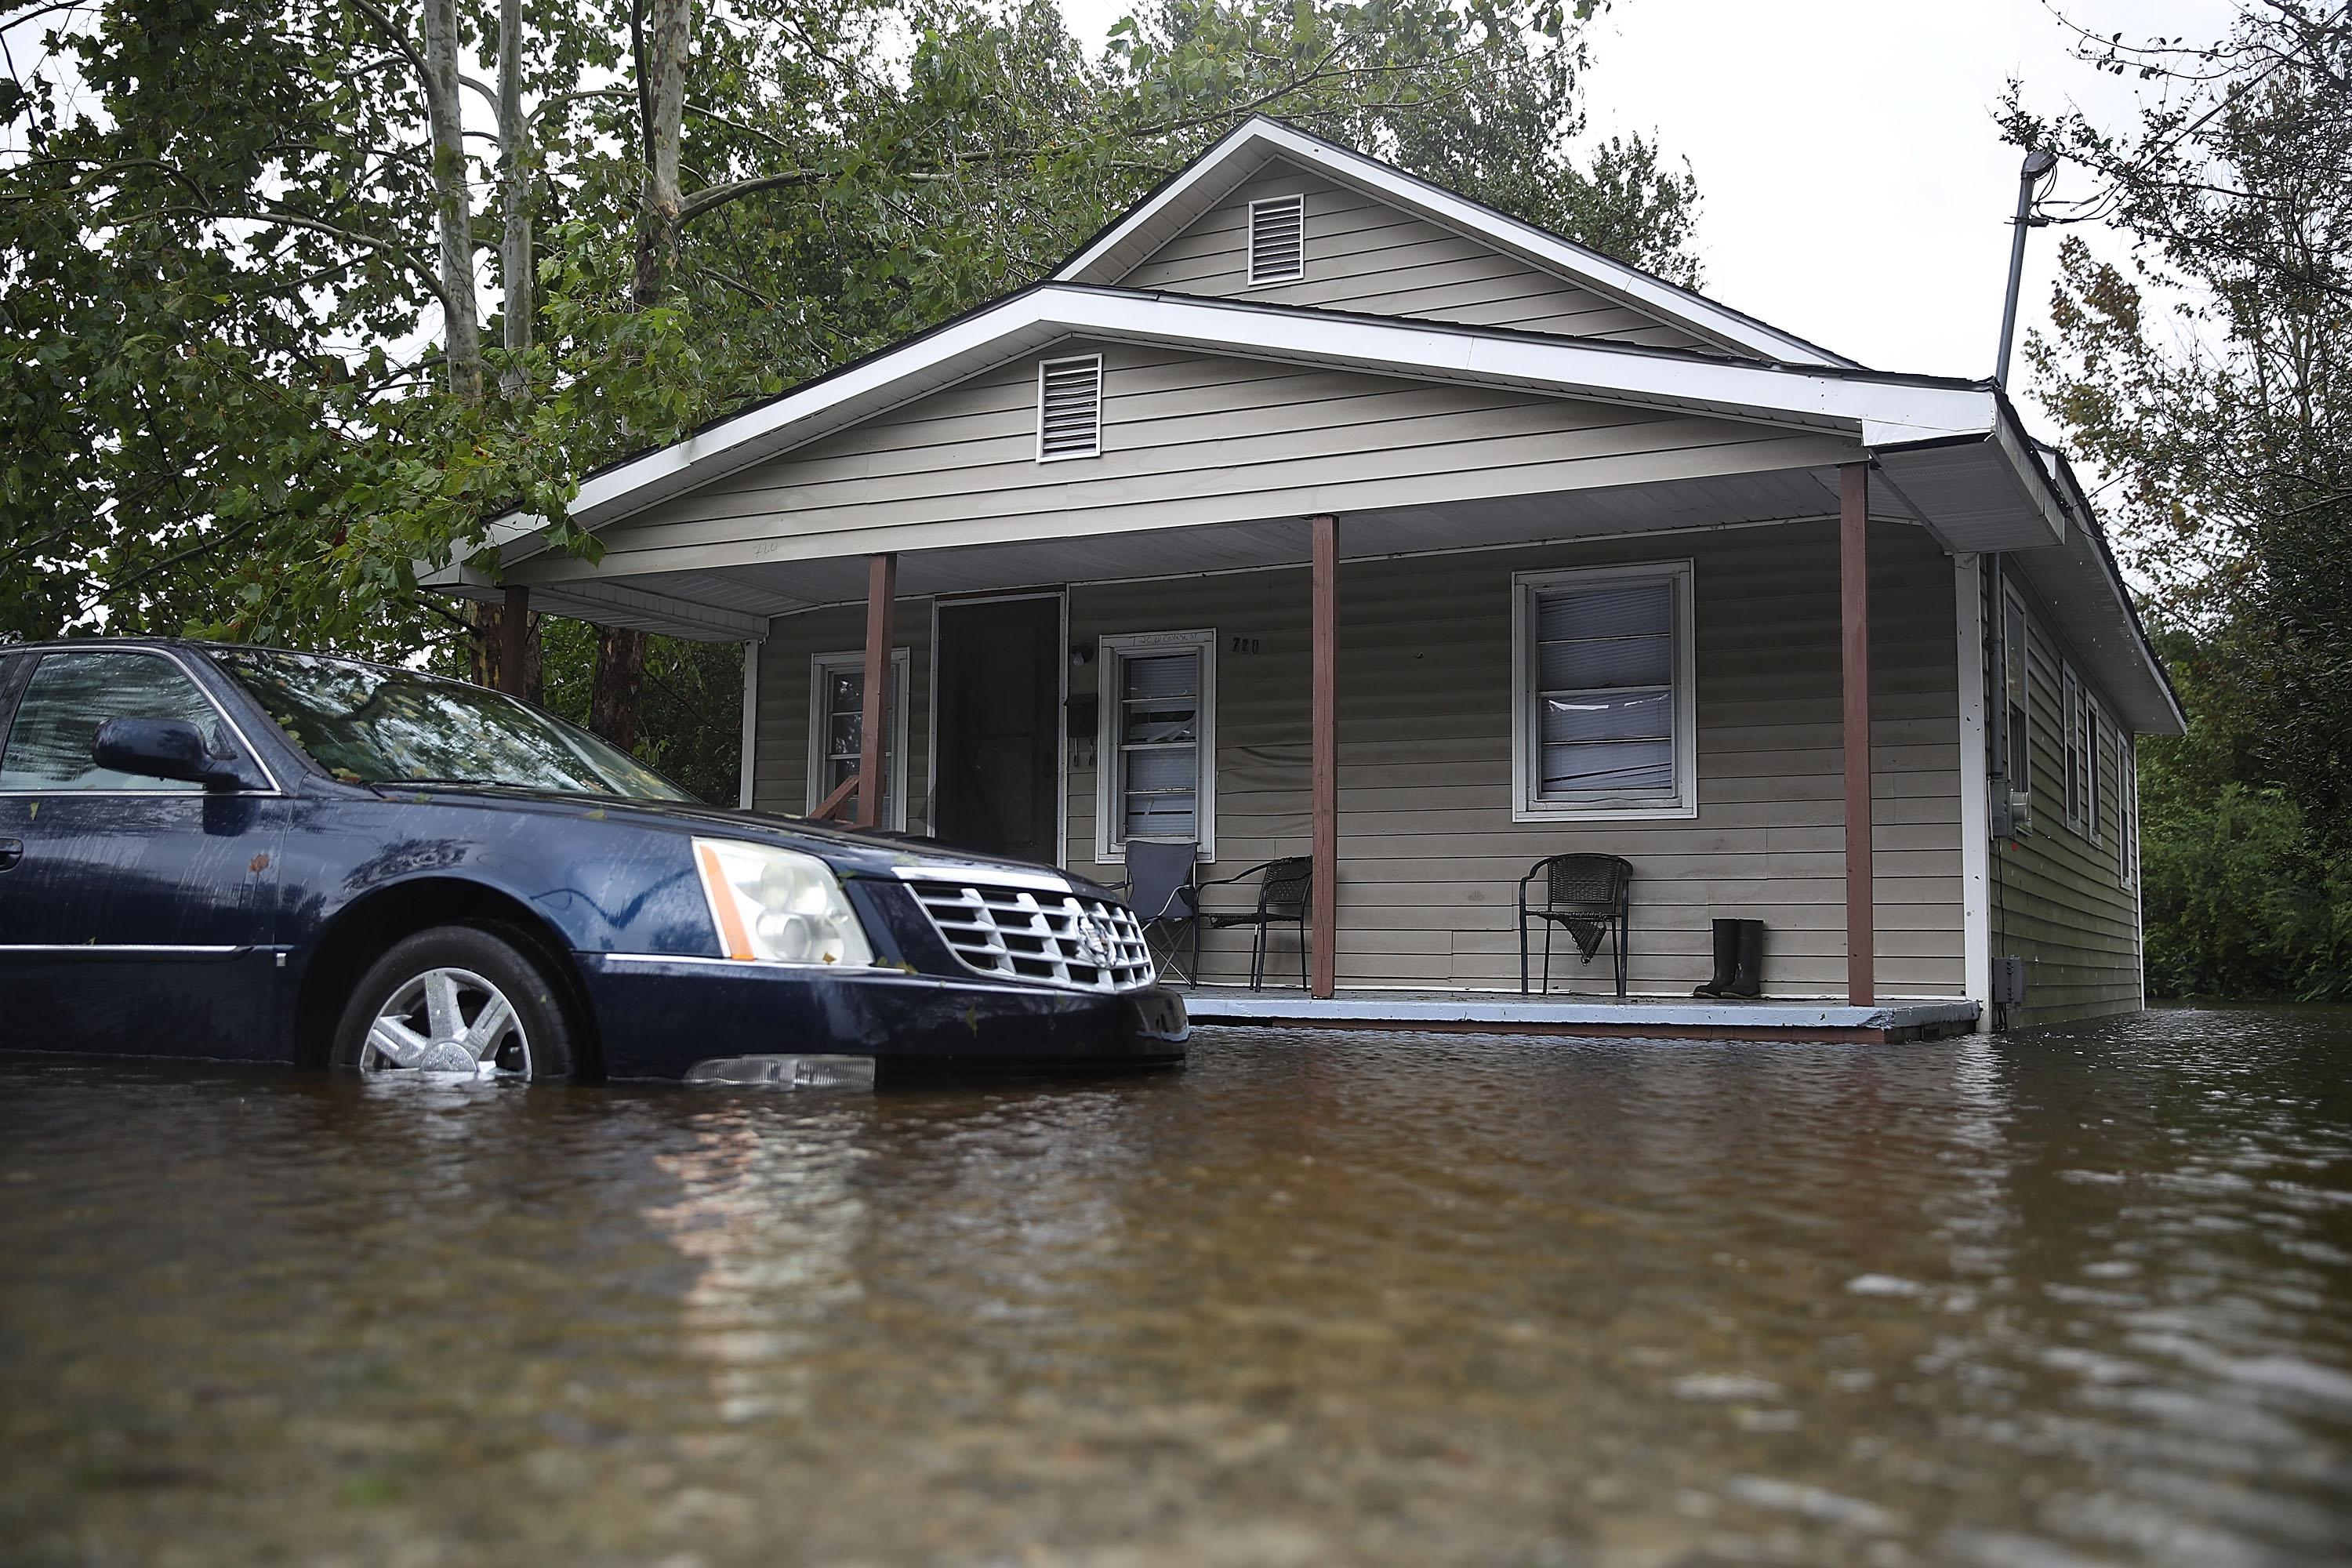 Flood waters surround a home after Hurricane Florence passed through the area on September 15, 2018 in Warsaw, North Carolina.